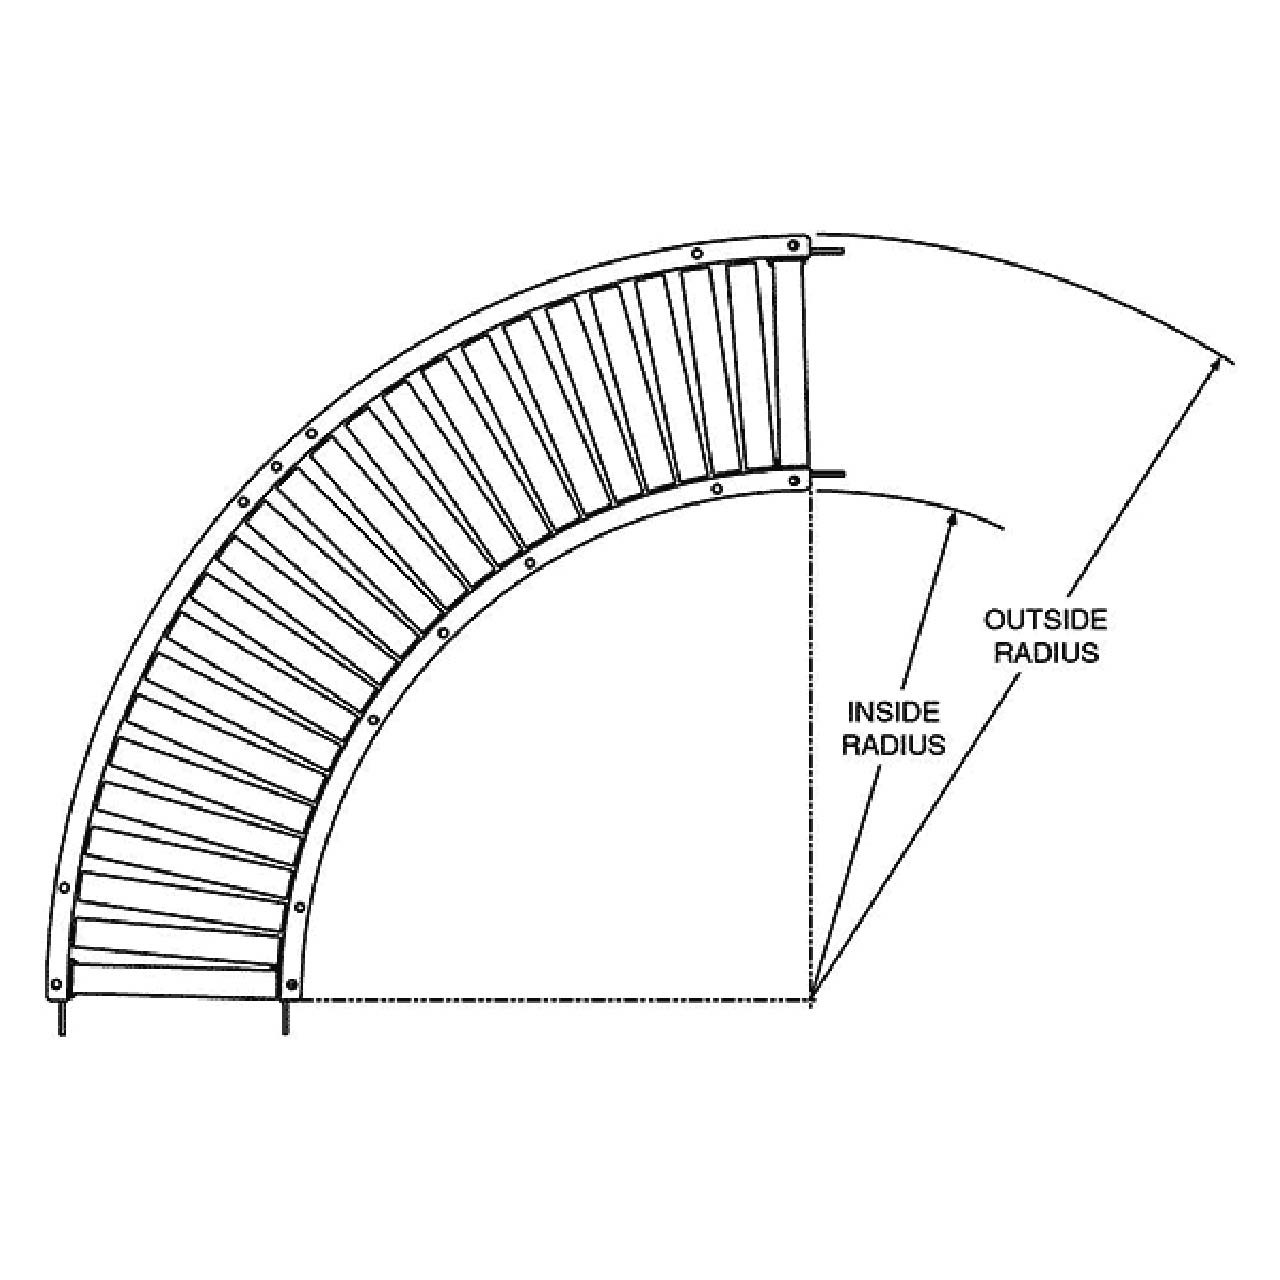 Gravity Roller Conveyor Curves Dimensions